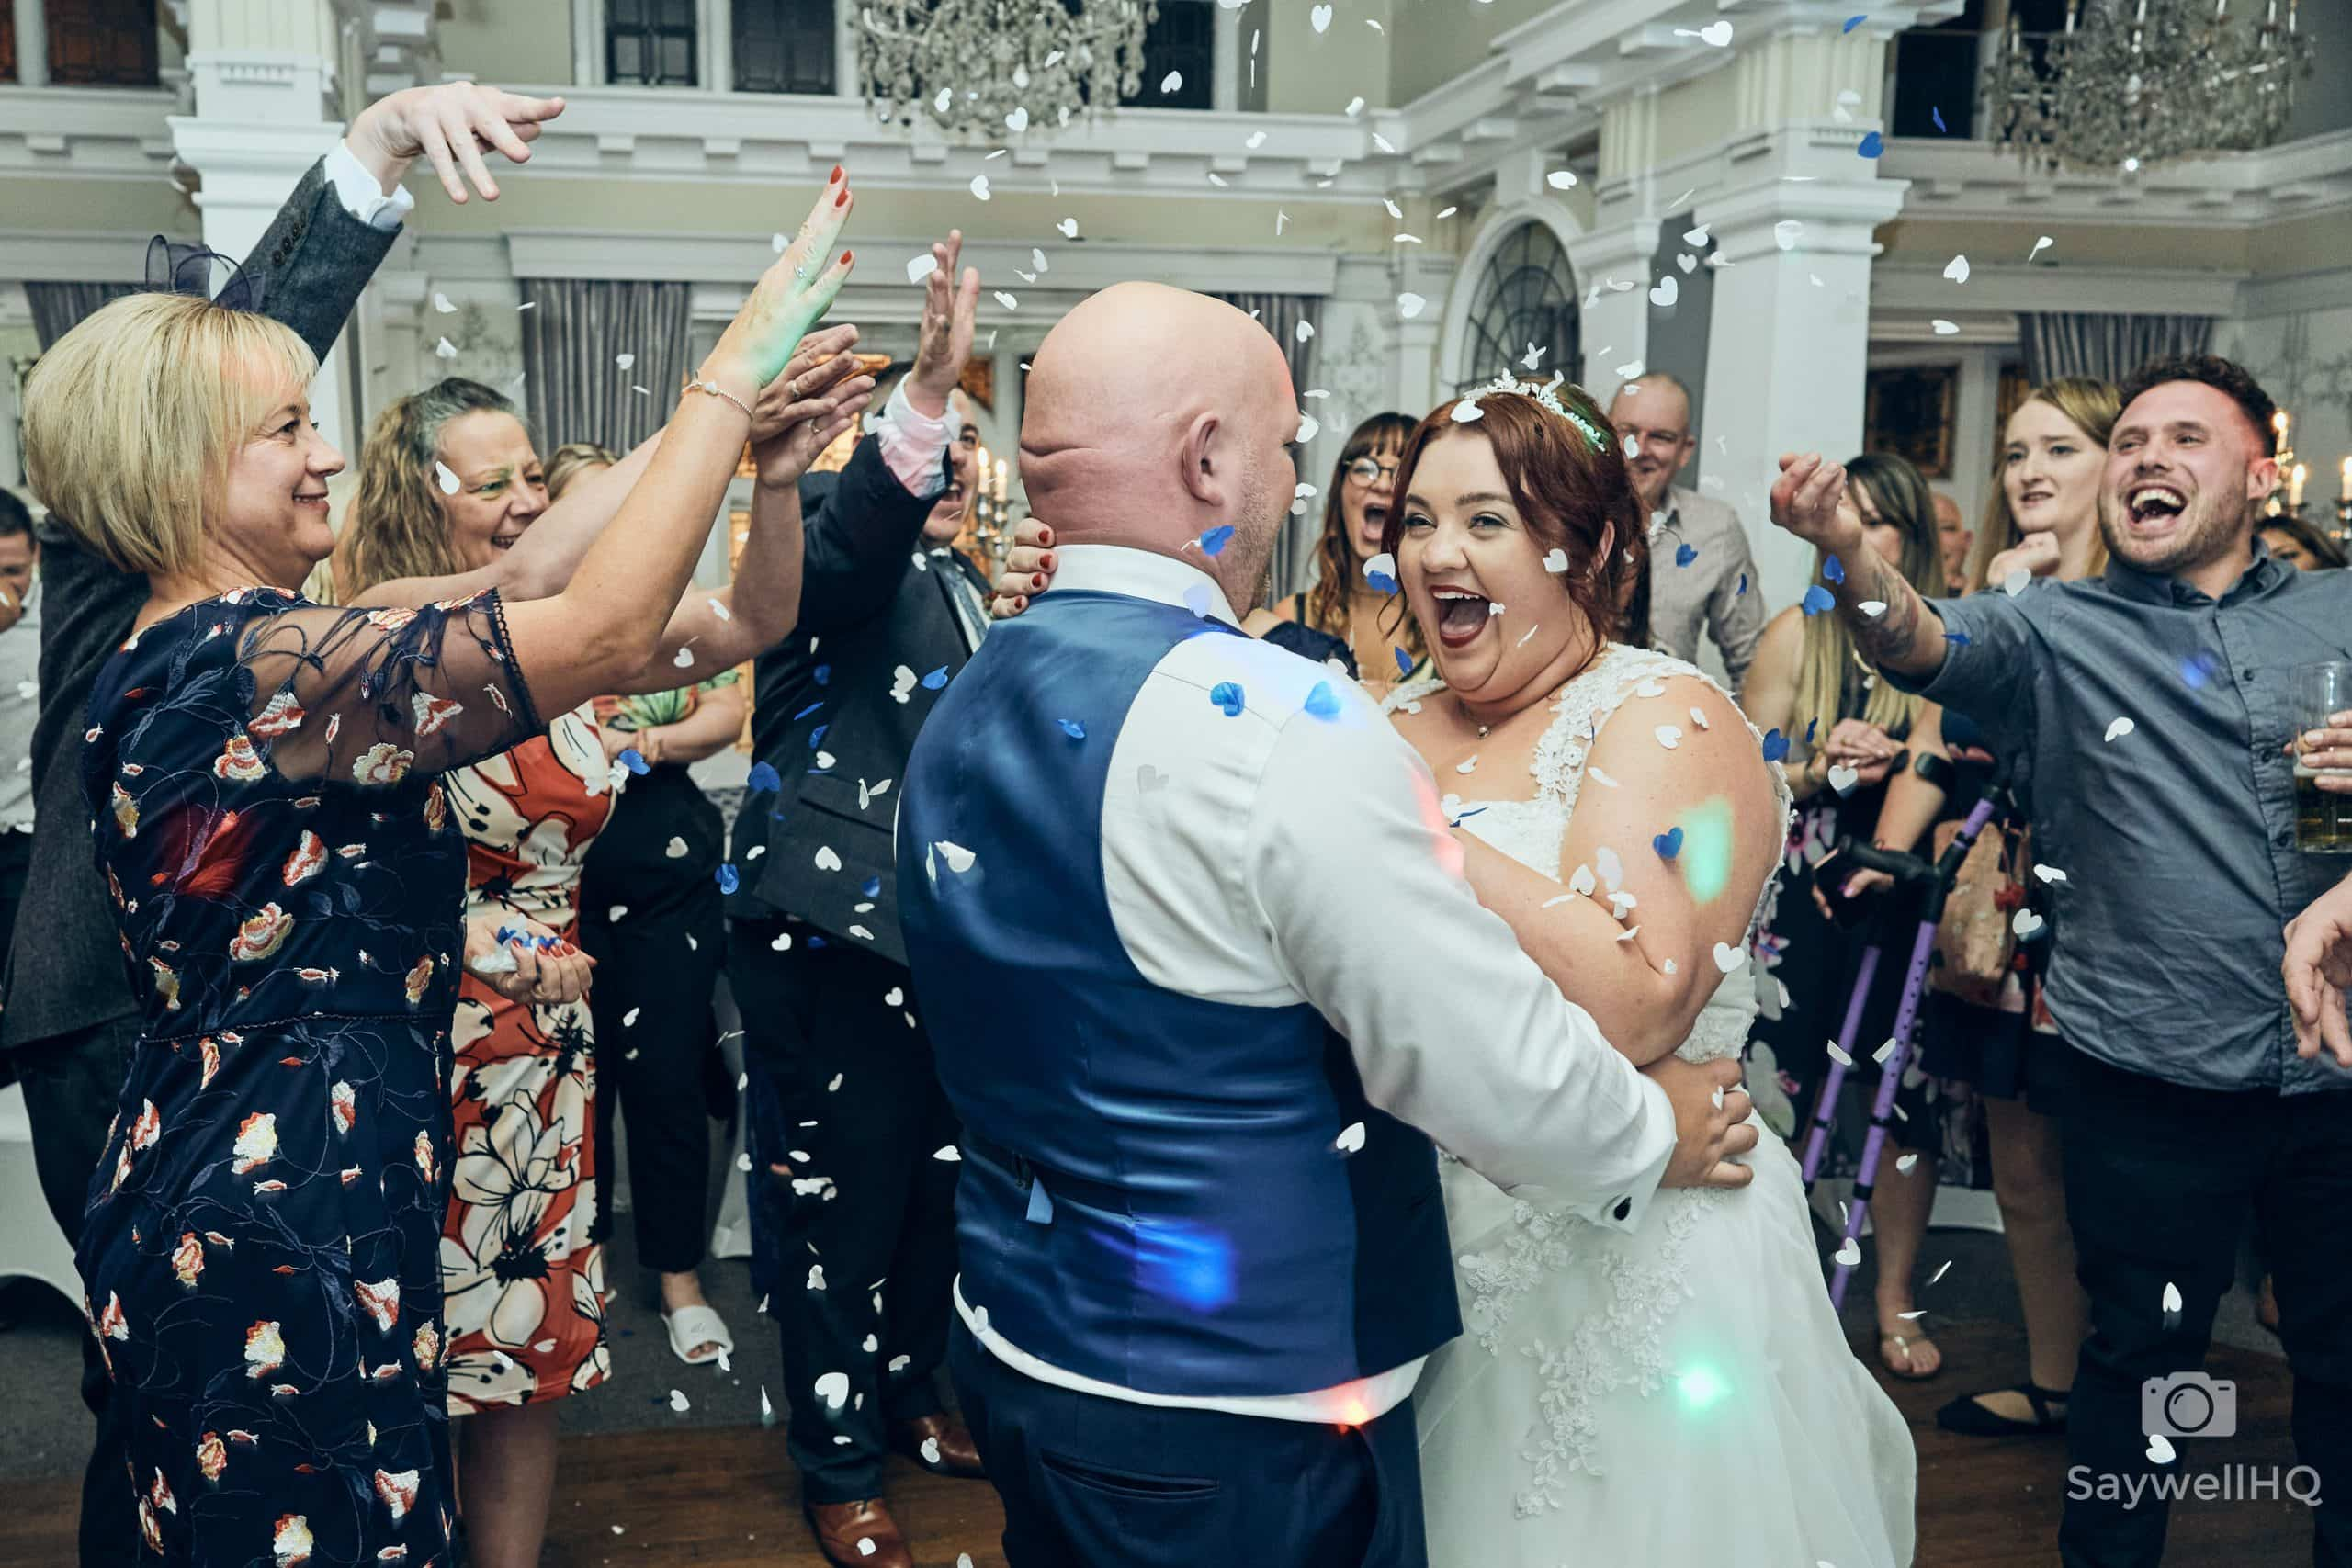 The Embankment Nottingham Wedding Photography - bride and groom showered in confetti during the first dance at the embankment pub in Nottingham